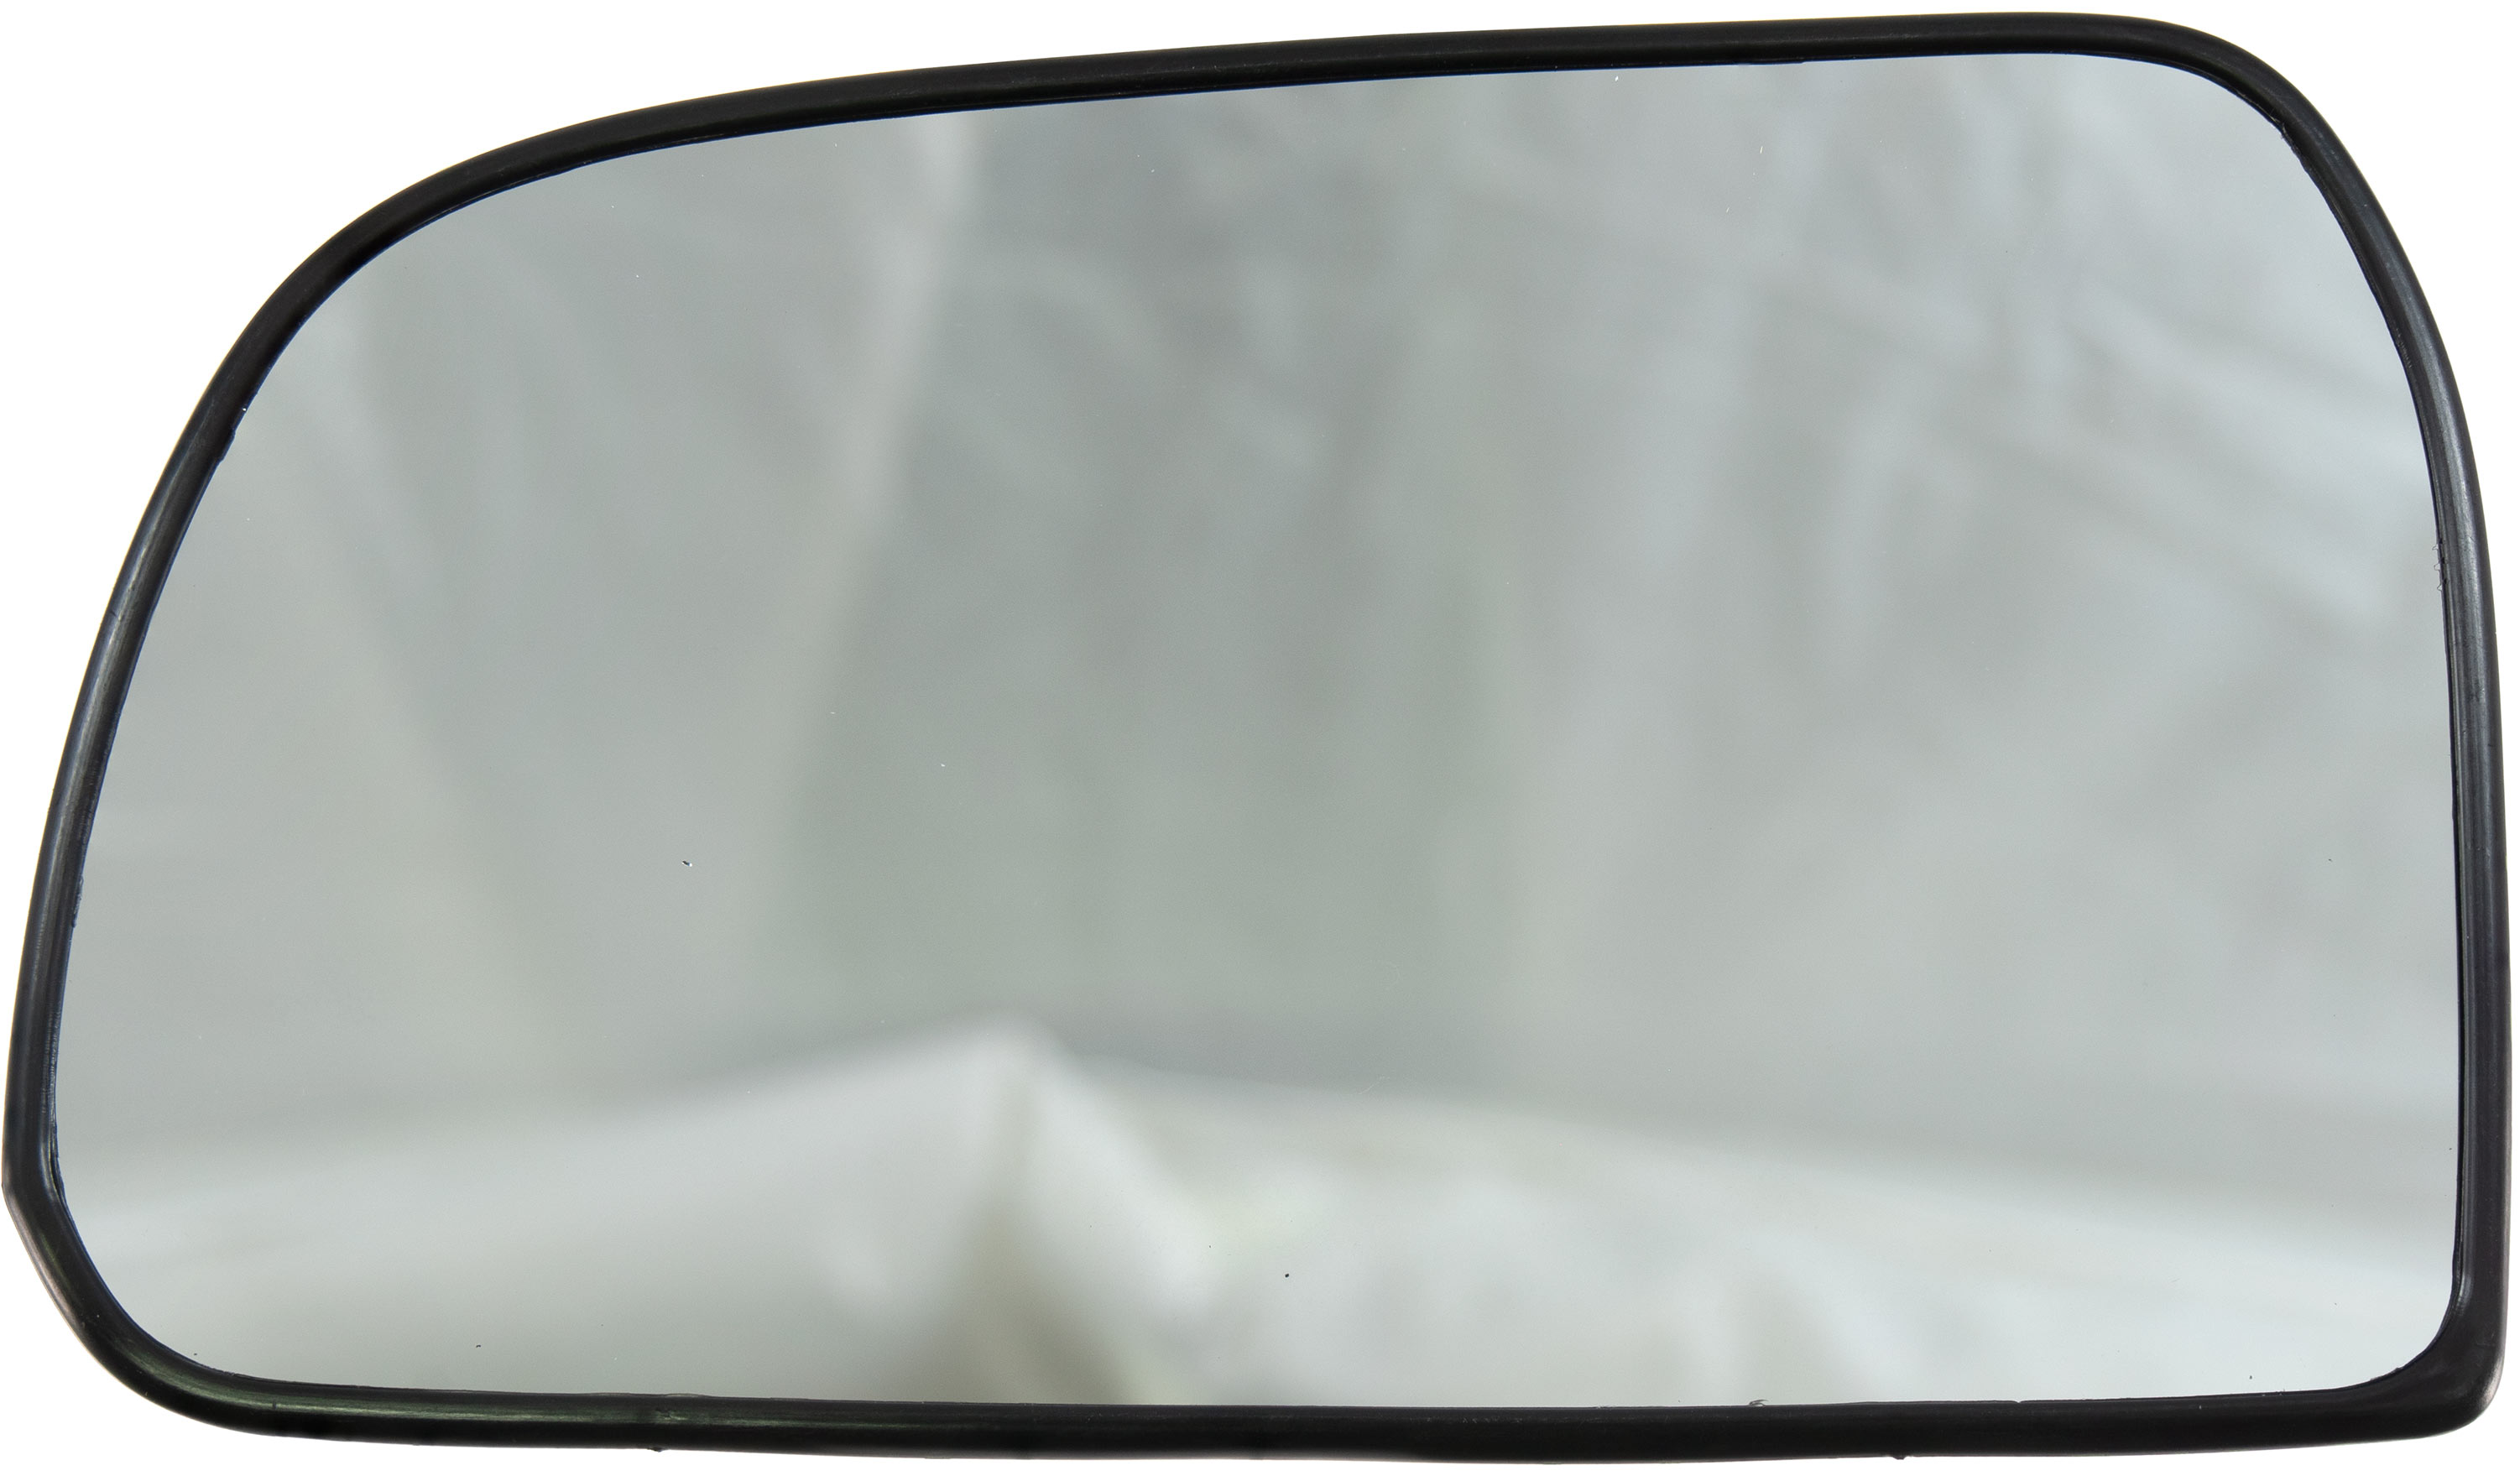 Replaces 876112E100 2005-2009 Hyundai Tucson Models With Heat Driver-Side APDTY 67779 Side View Mirror Replacement Glass Fits Left